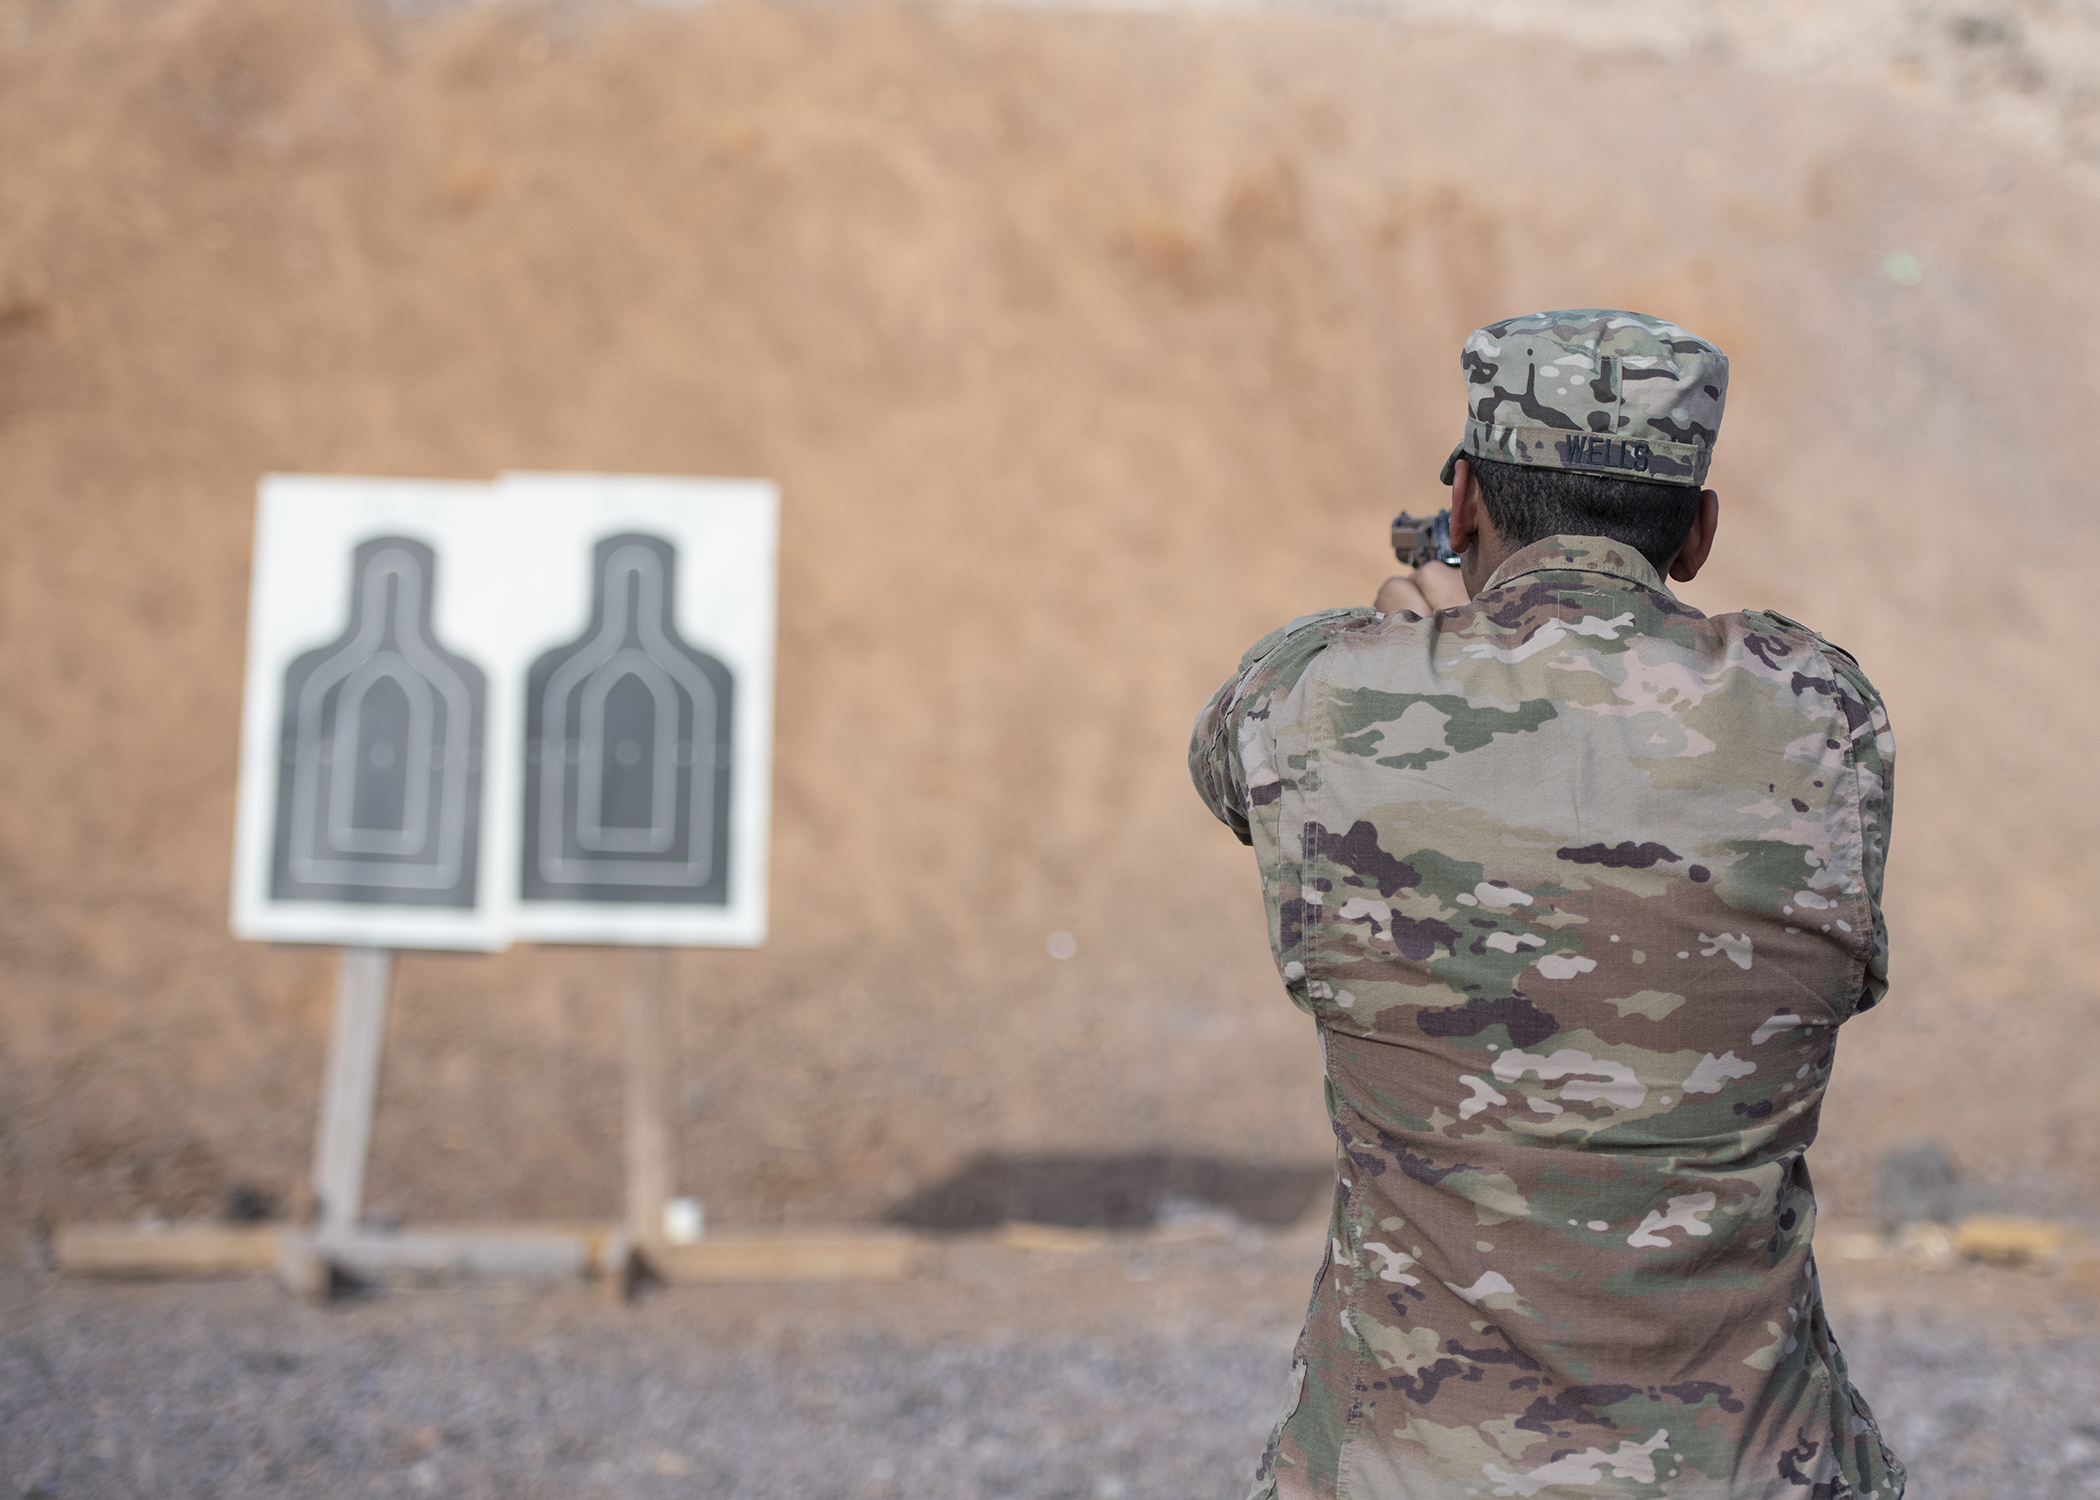 A U.S. Army Soldier from 1-141 Infantry Regiment, Task Force Alamo, Texas National Guard, assigned to Combined Joint Task Force-Horn of Africa, practices before the official marksmanship portion of the German Armed Forces Badge for military proficiency at the Arta Range Complex, Djibouti, Jan. 17, 2019. Competing for the badge offered a unique opportunity to Soldiers and worked as an information exchange between the U.S. and Germany militaries. (U.S. Air Force photo by Tech. Sgt. Shawn Nickel)